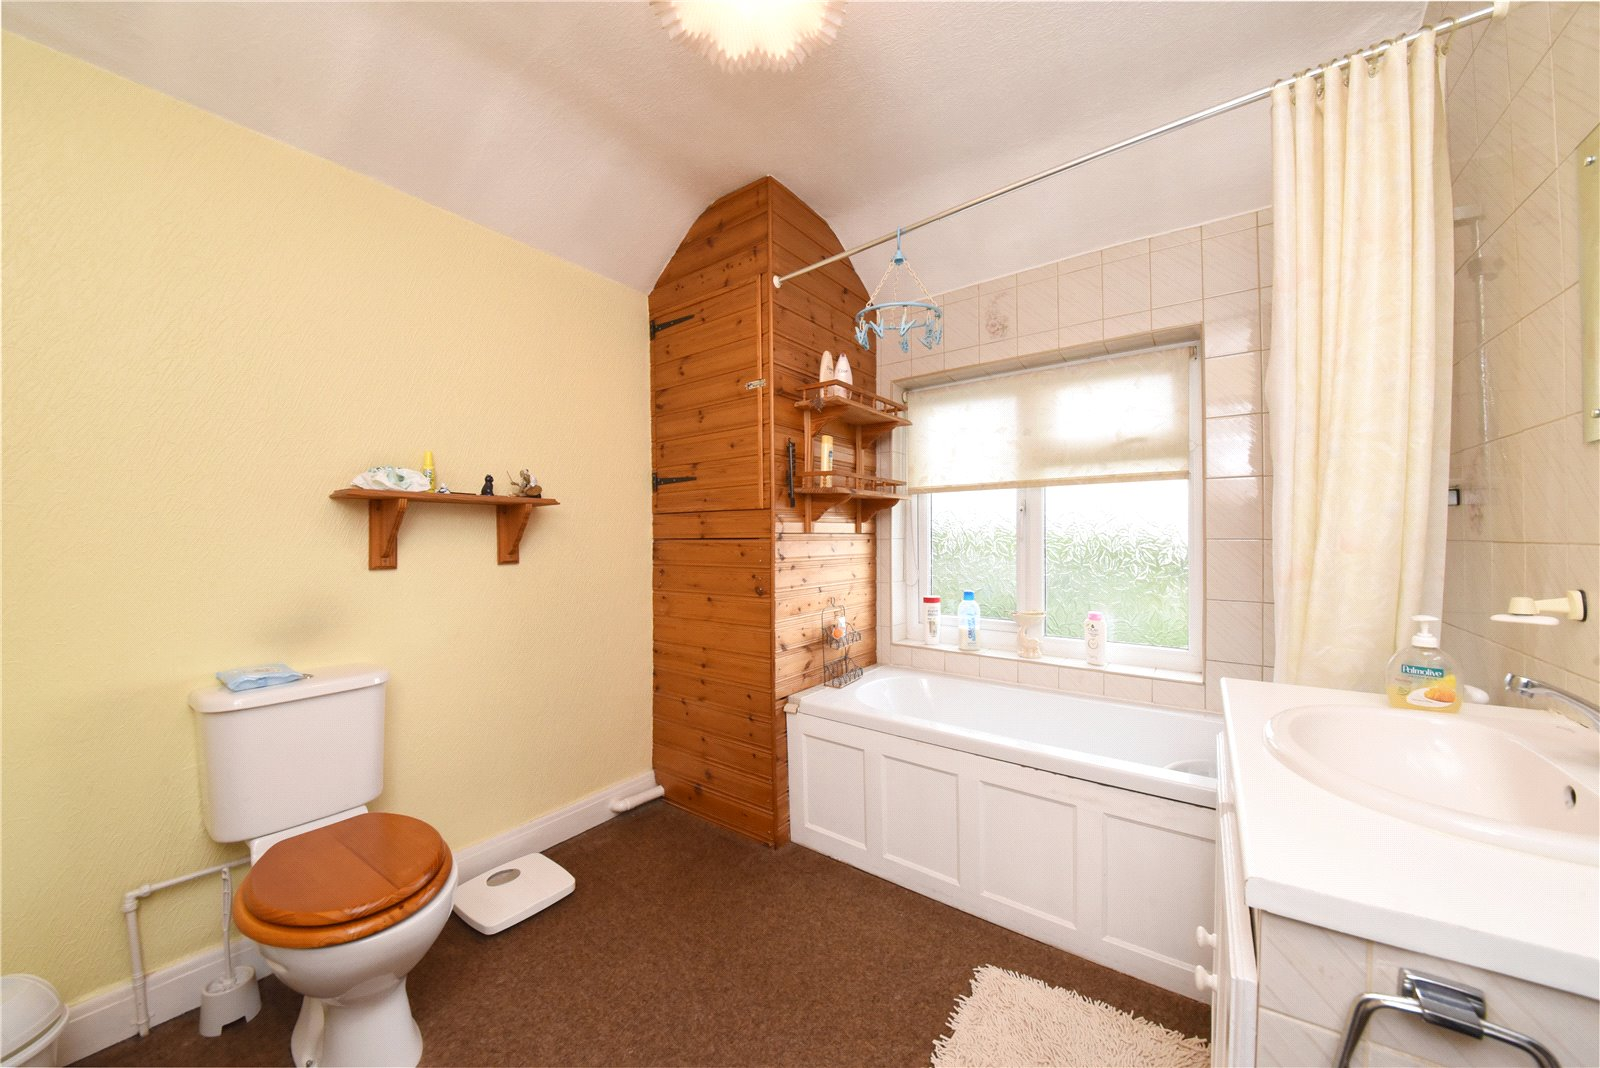 3 bed house for sale in Whetstone, N20 0DG 7